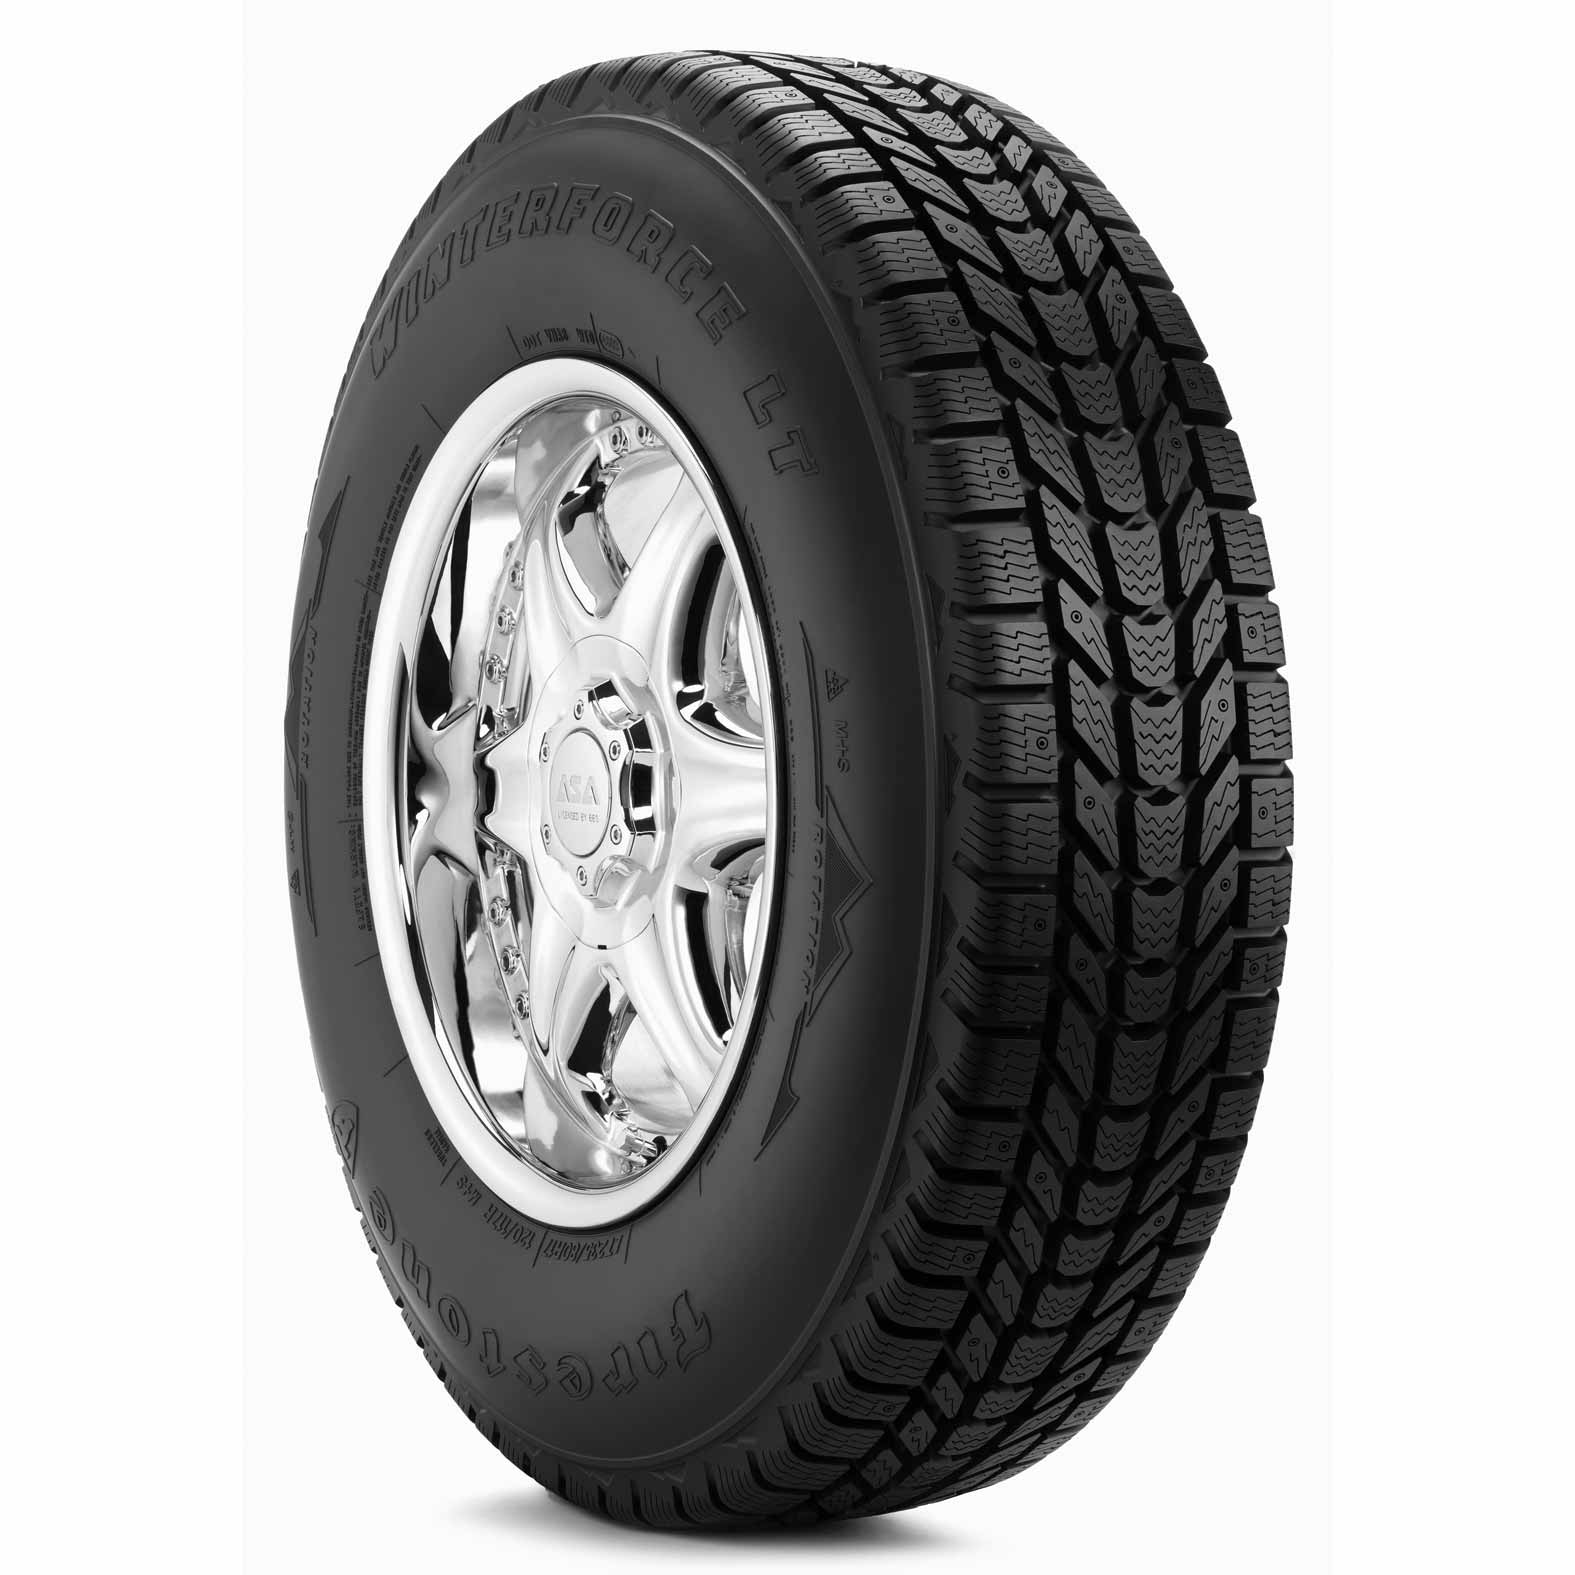 Firestone Winterforce LT tire - angle